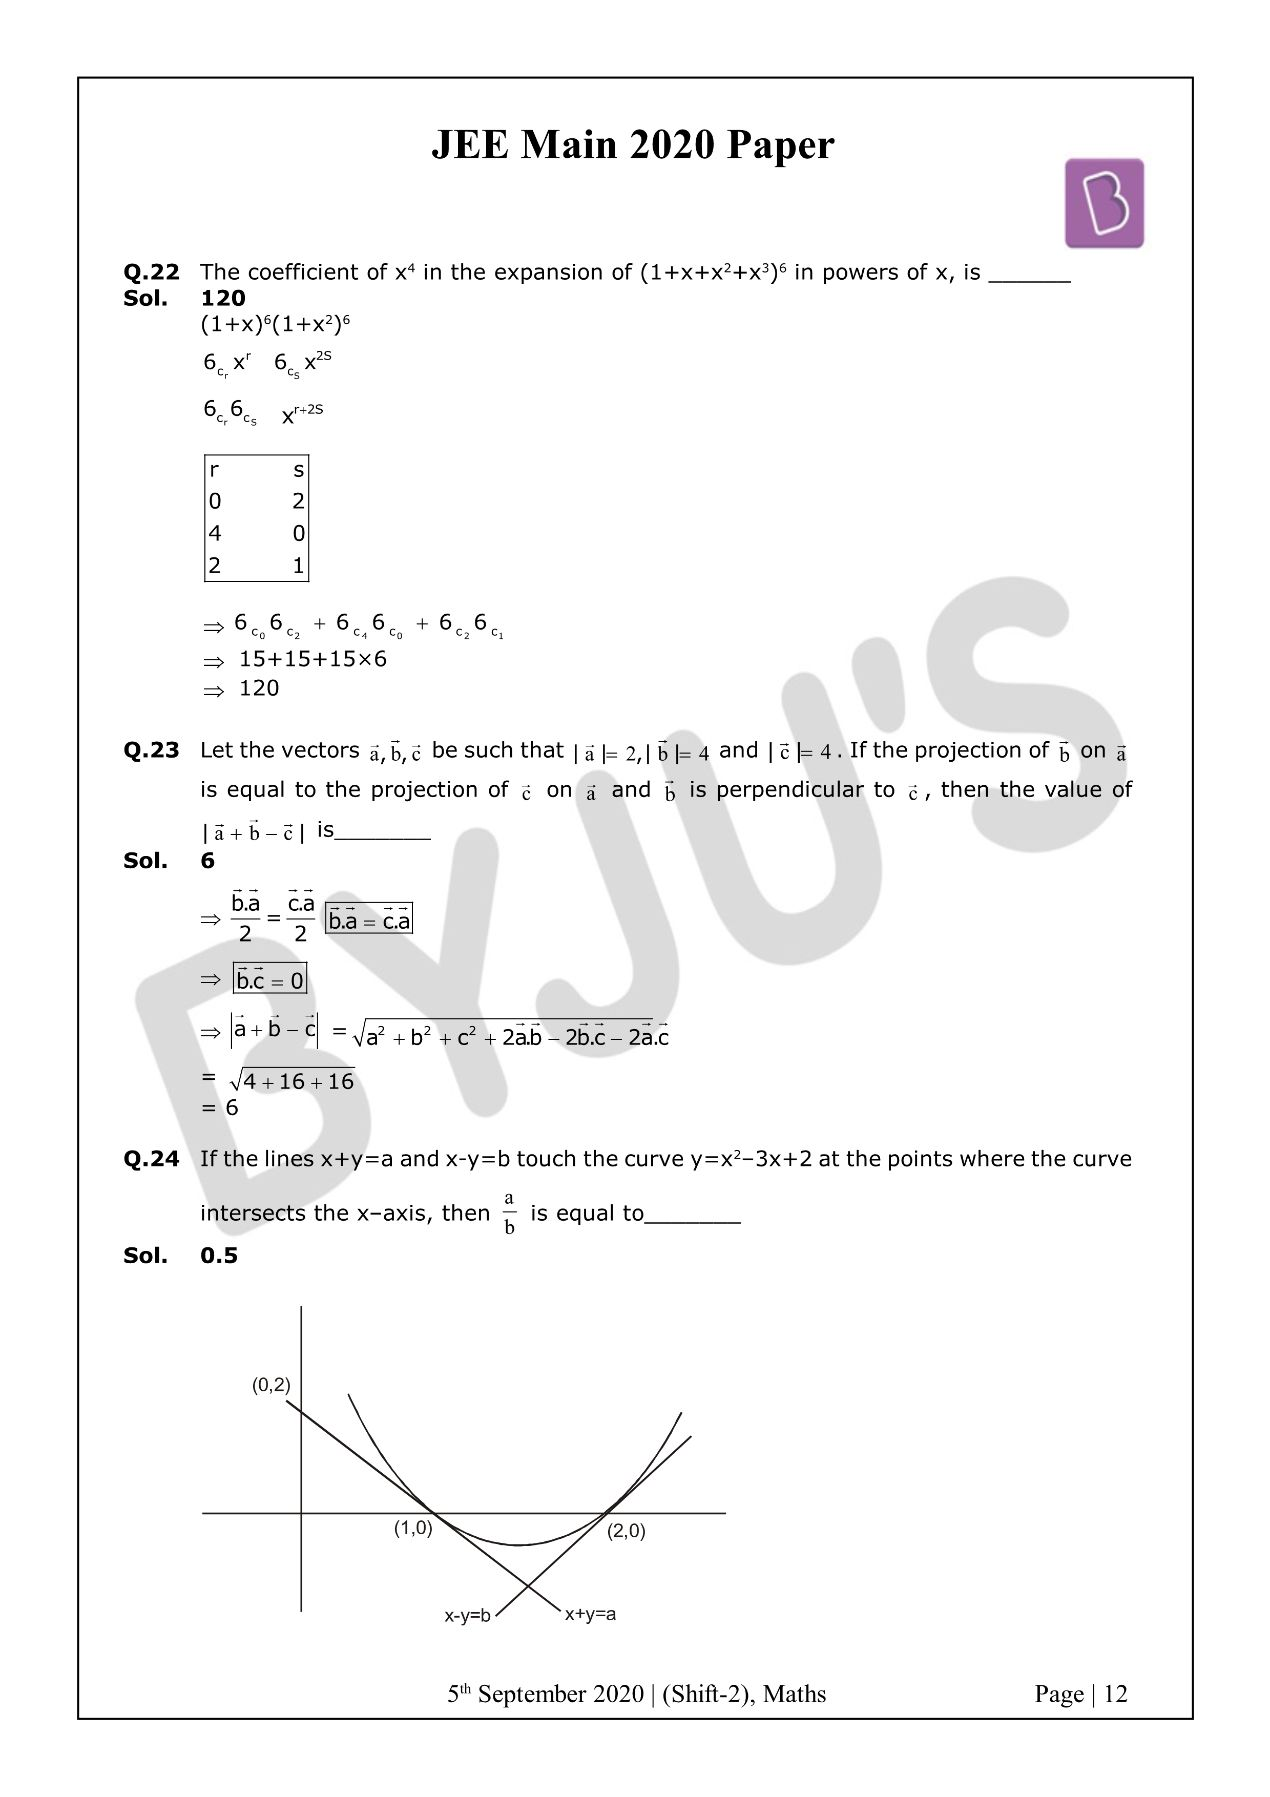 JEE Main 2020 Paper With Solutions Maths Shift 2 (Sept 5